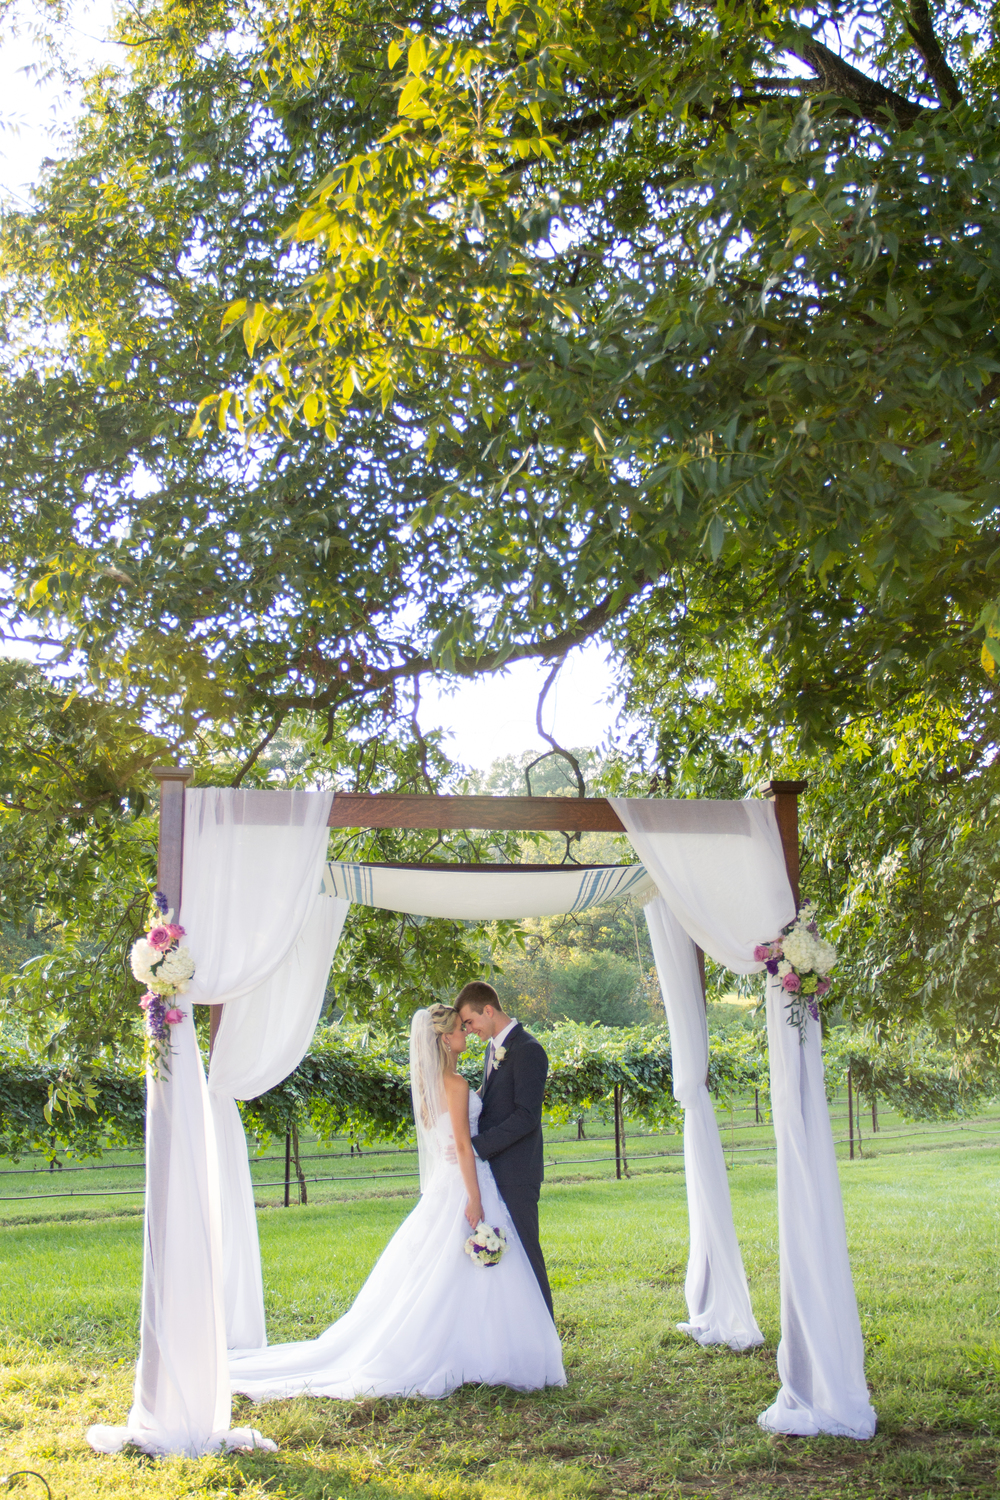 The day was absolutely beautiful and the sun began setting as soon as the ceremony ended.